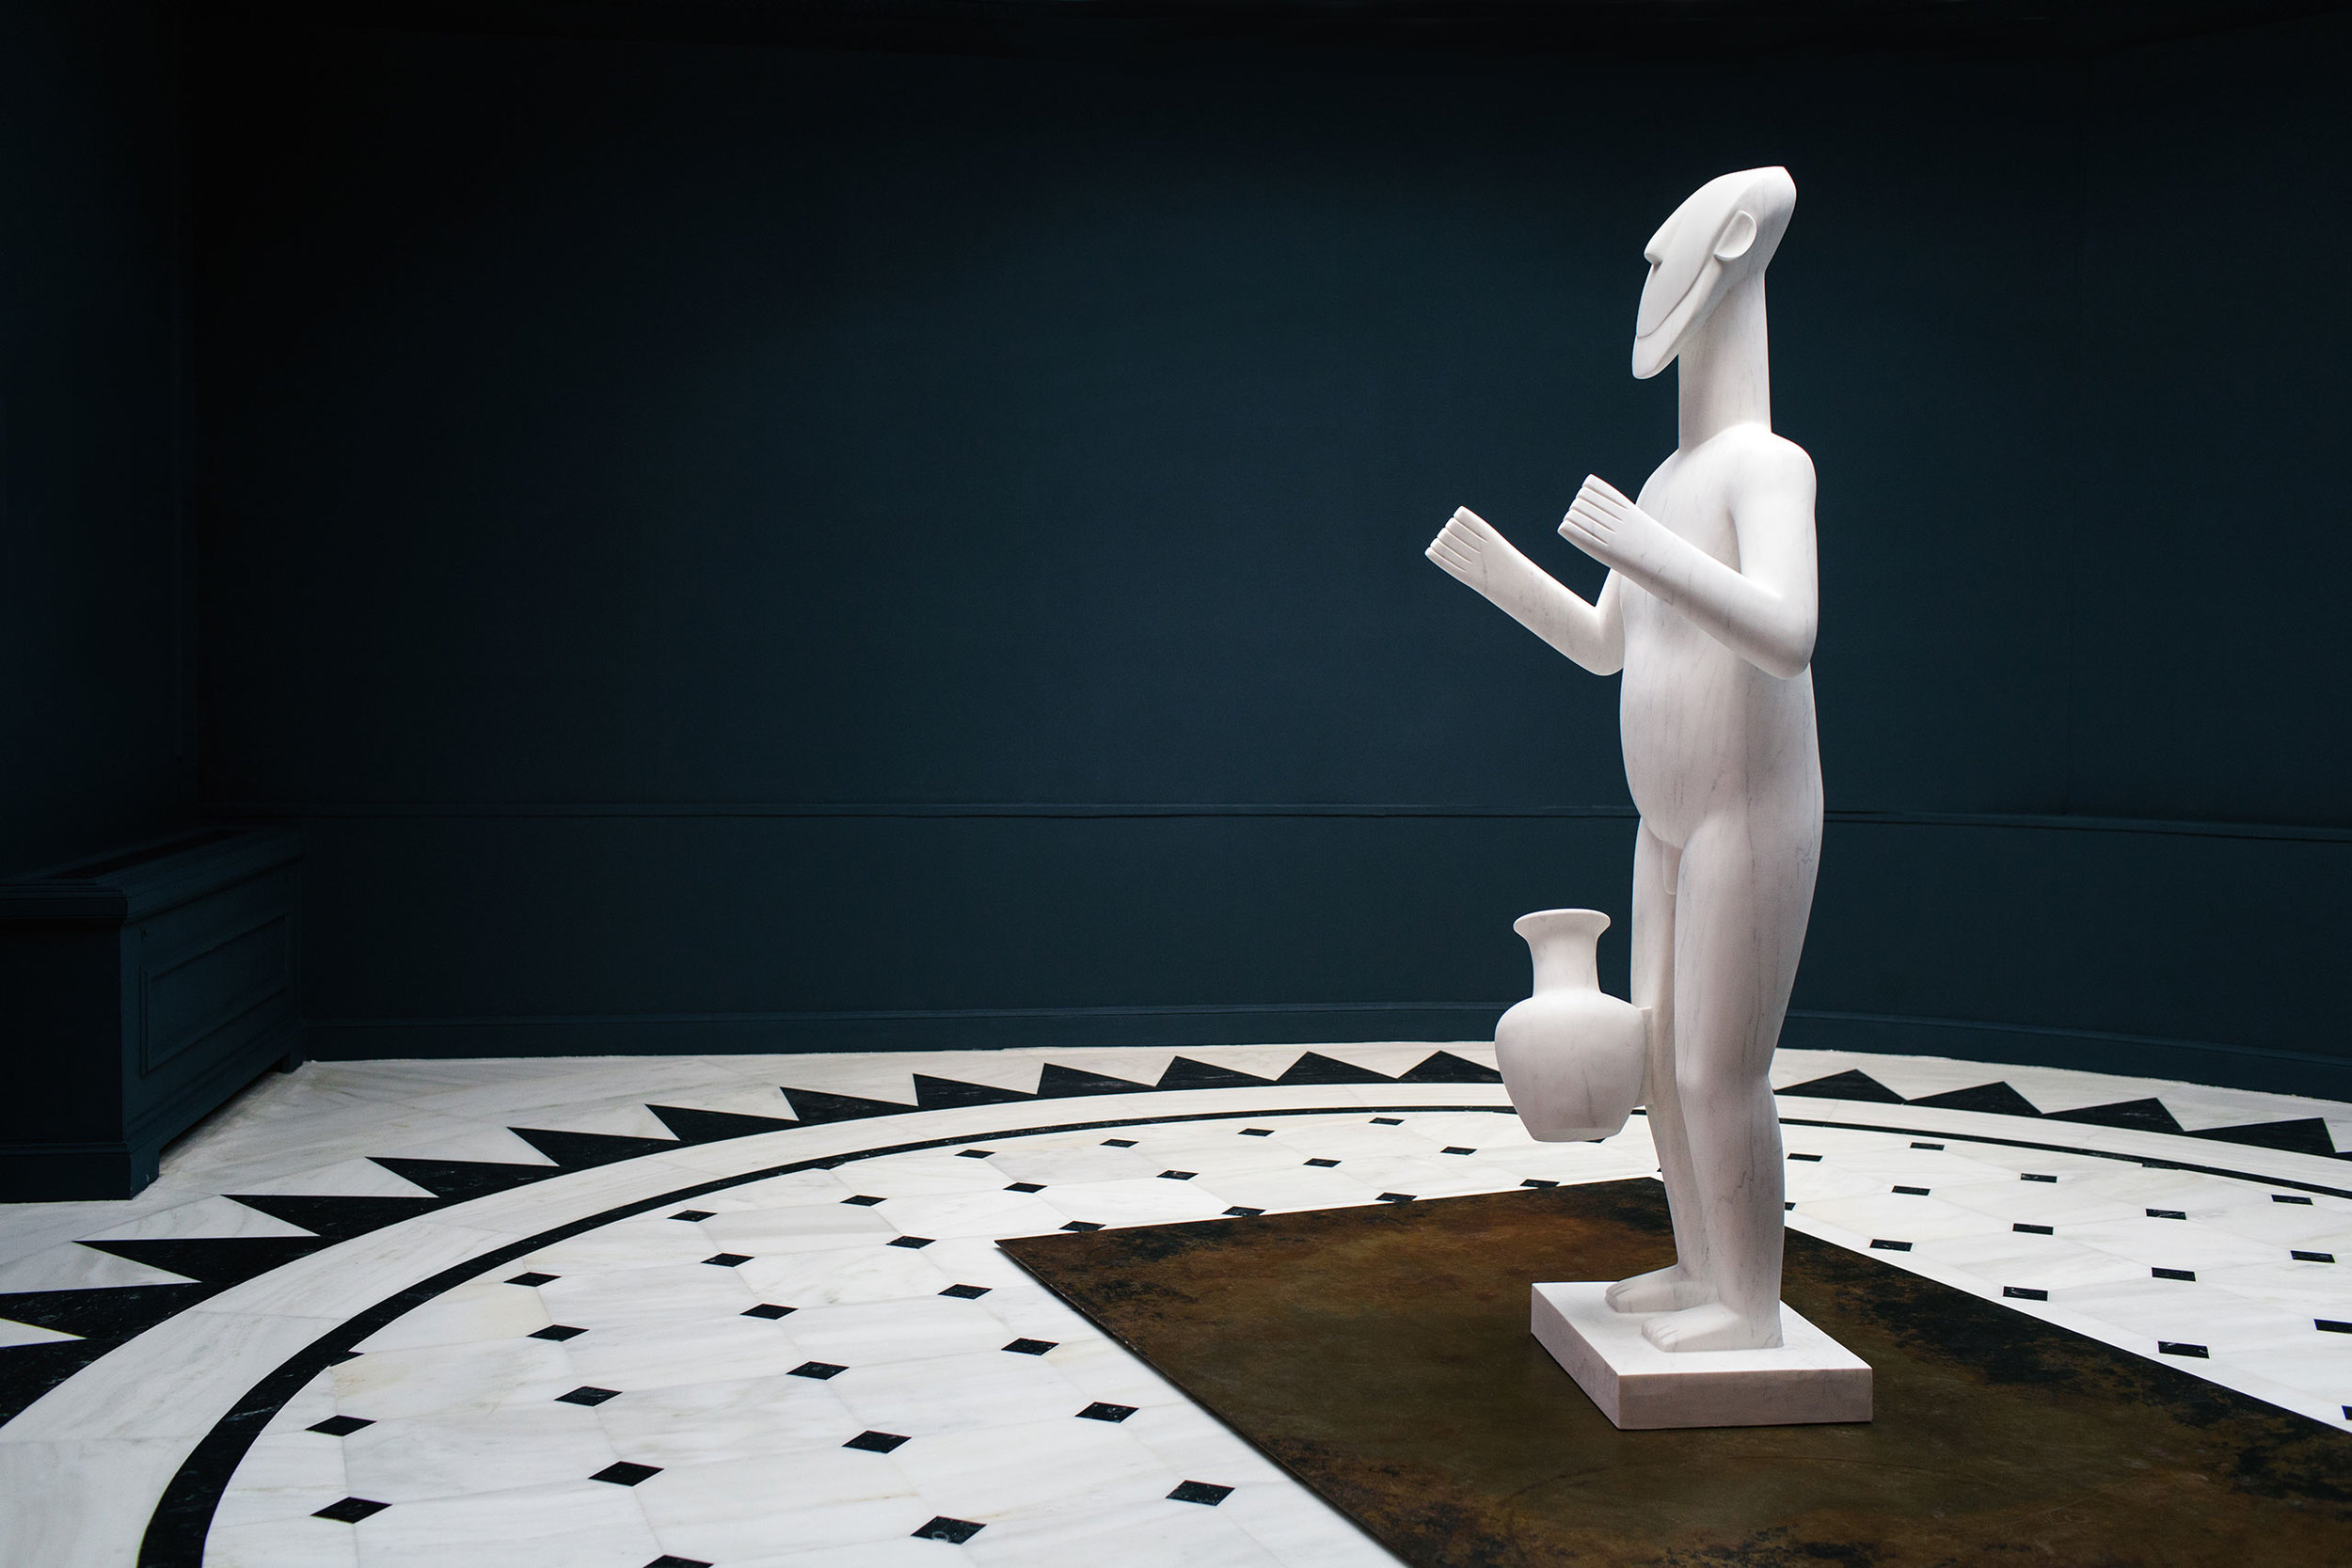 p4_ai_weiwei_at_museum_of_cycladic_art_standing_figure_2016_yatzer.jpg